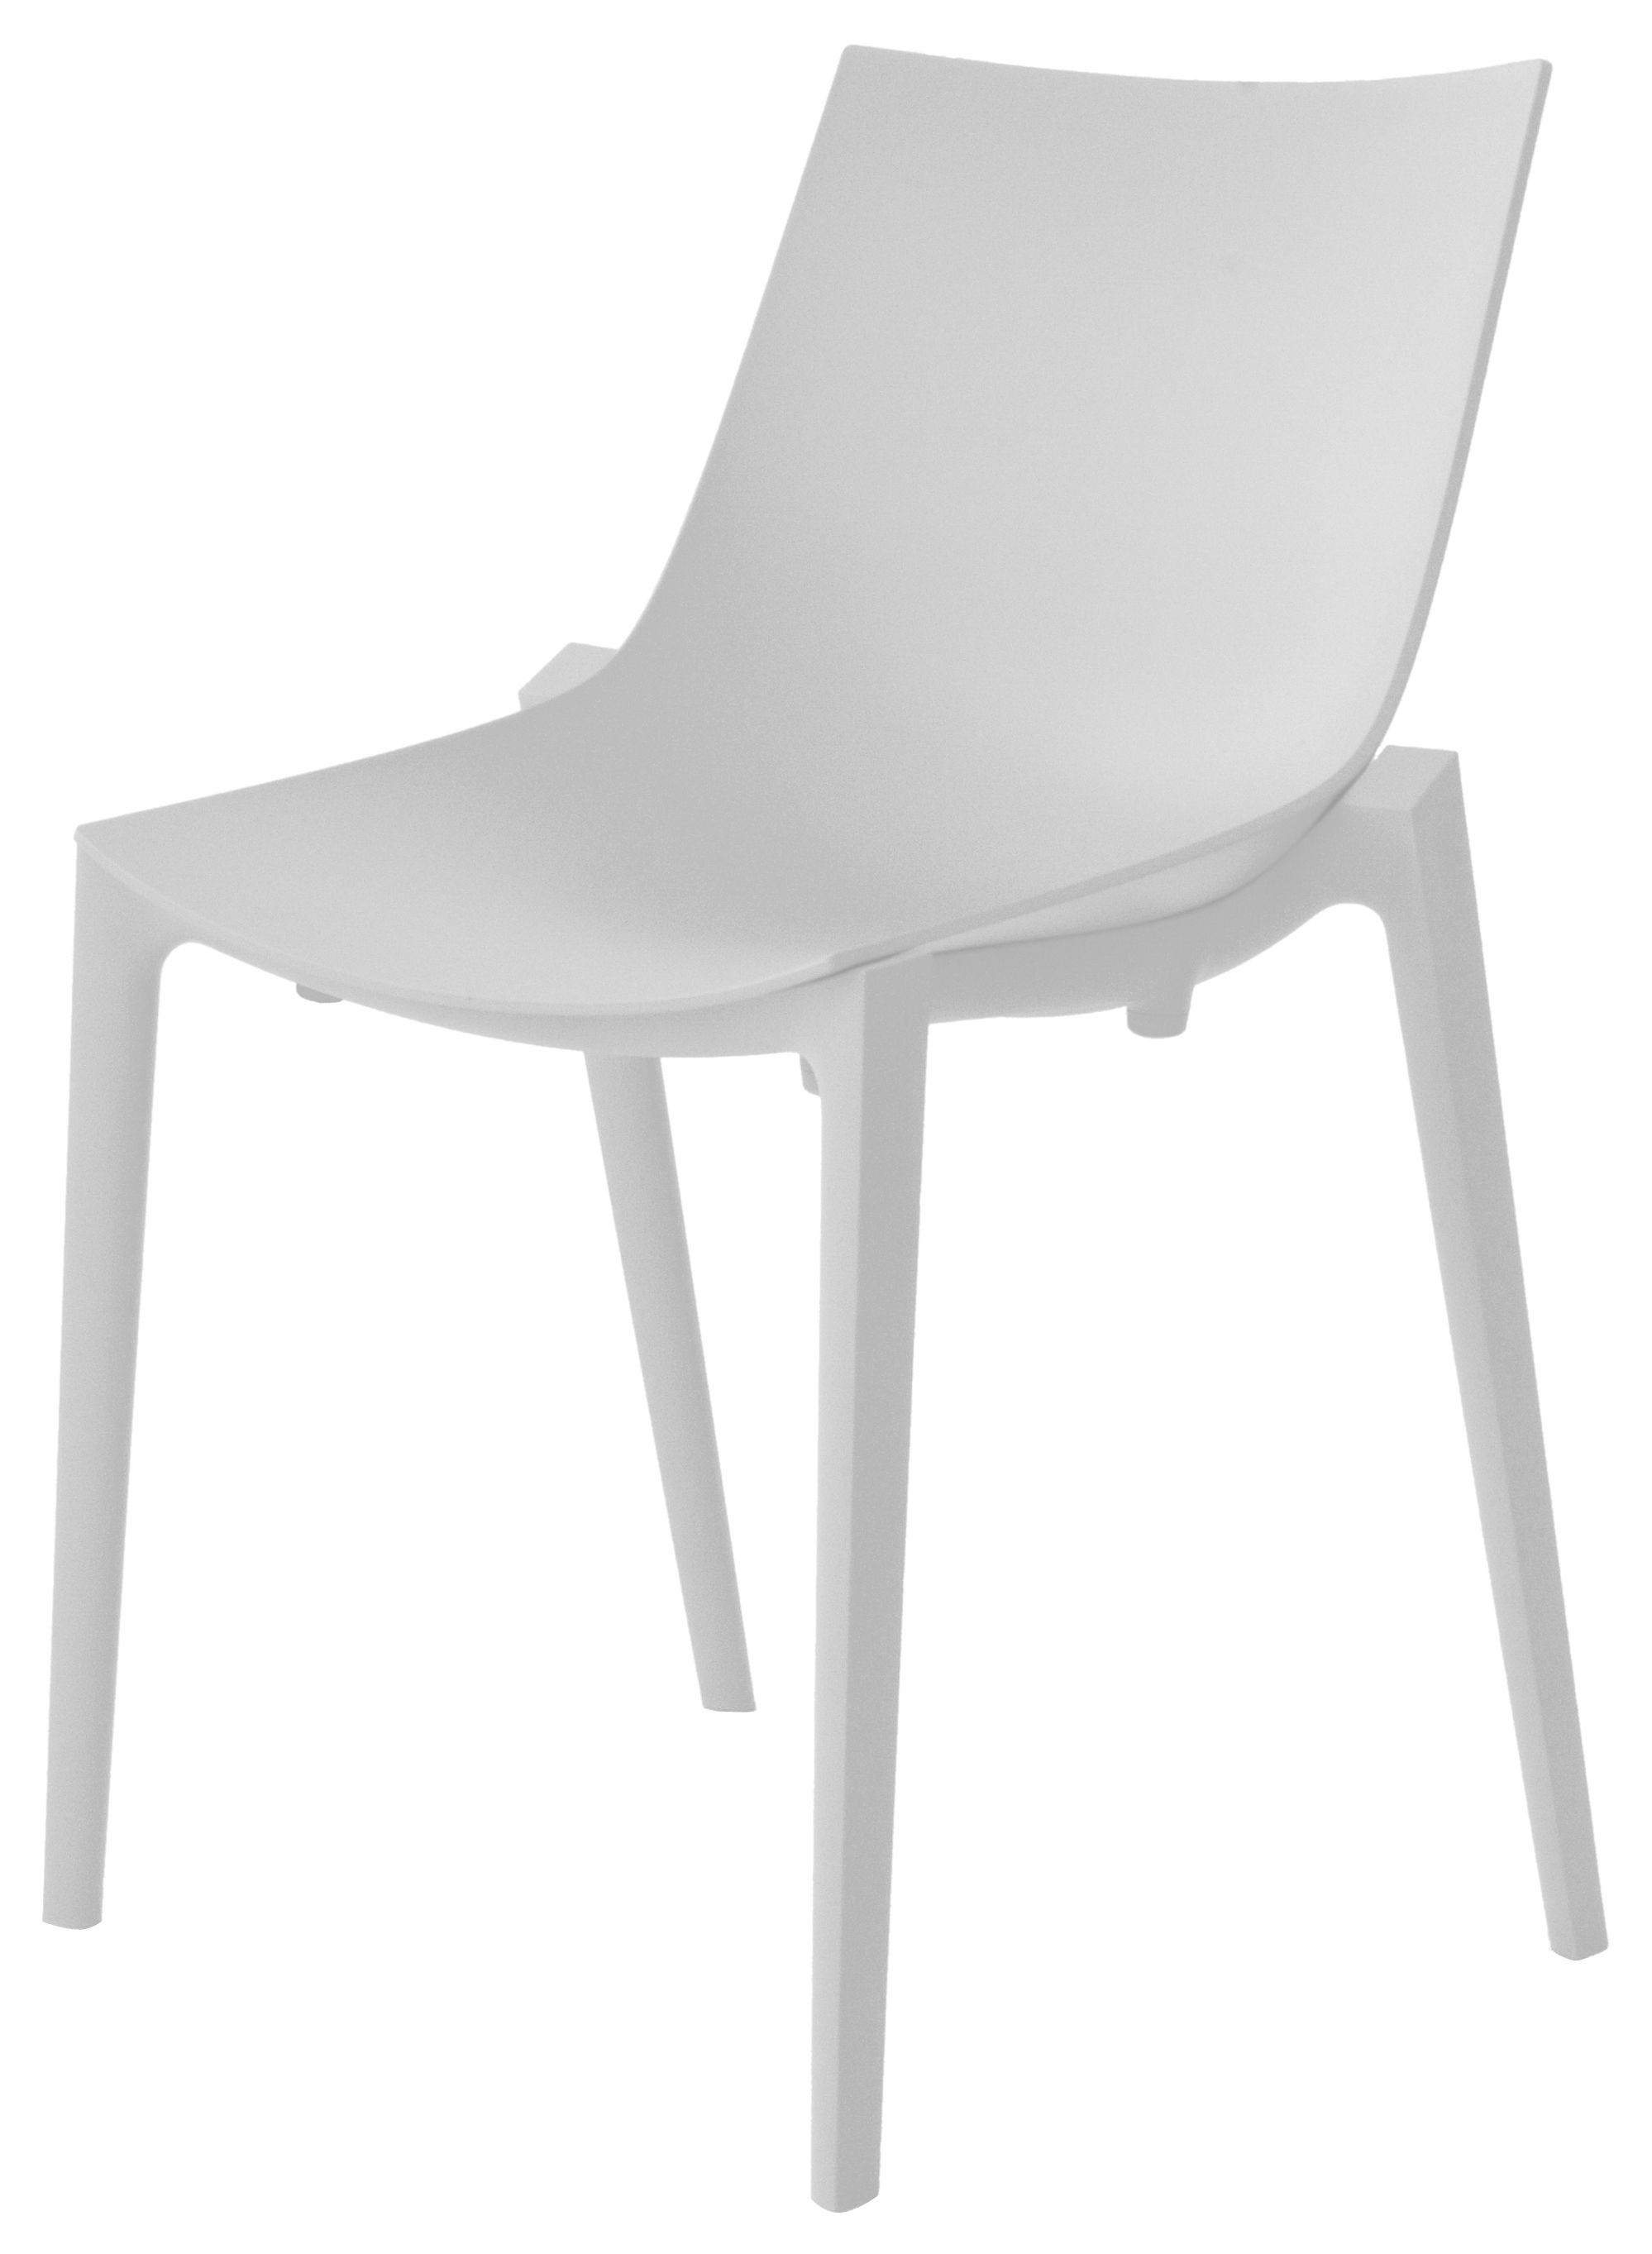 Zartan basic chair by philippe starck light grey by magis for Chair design basics